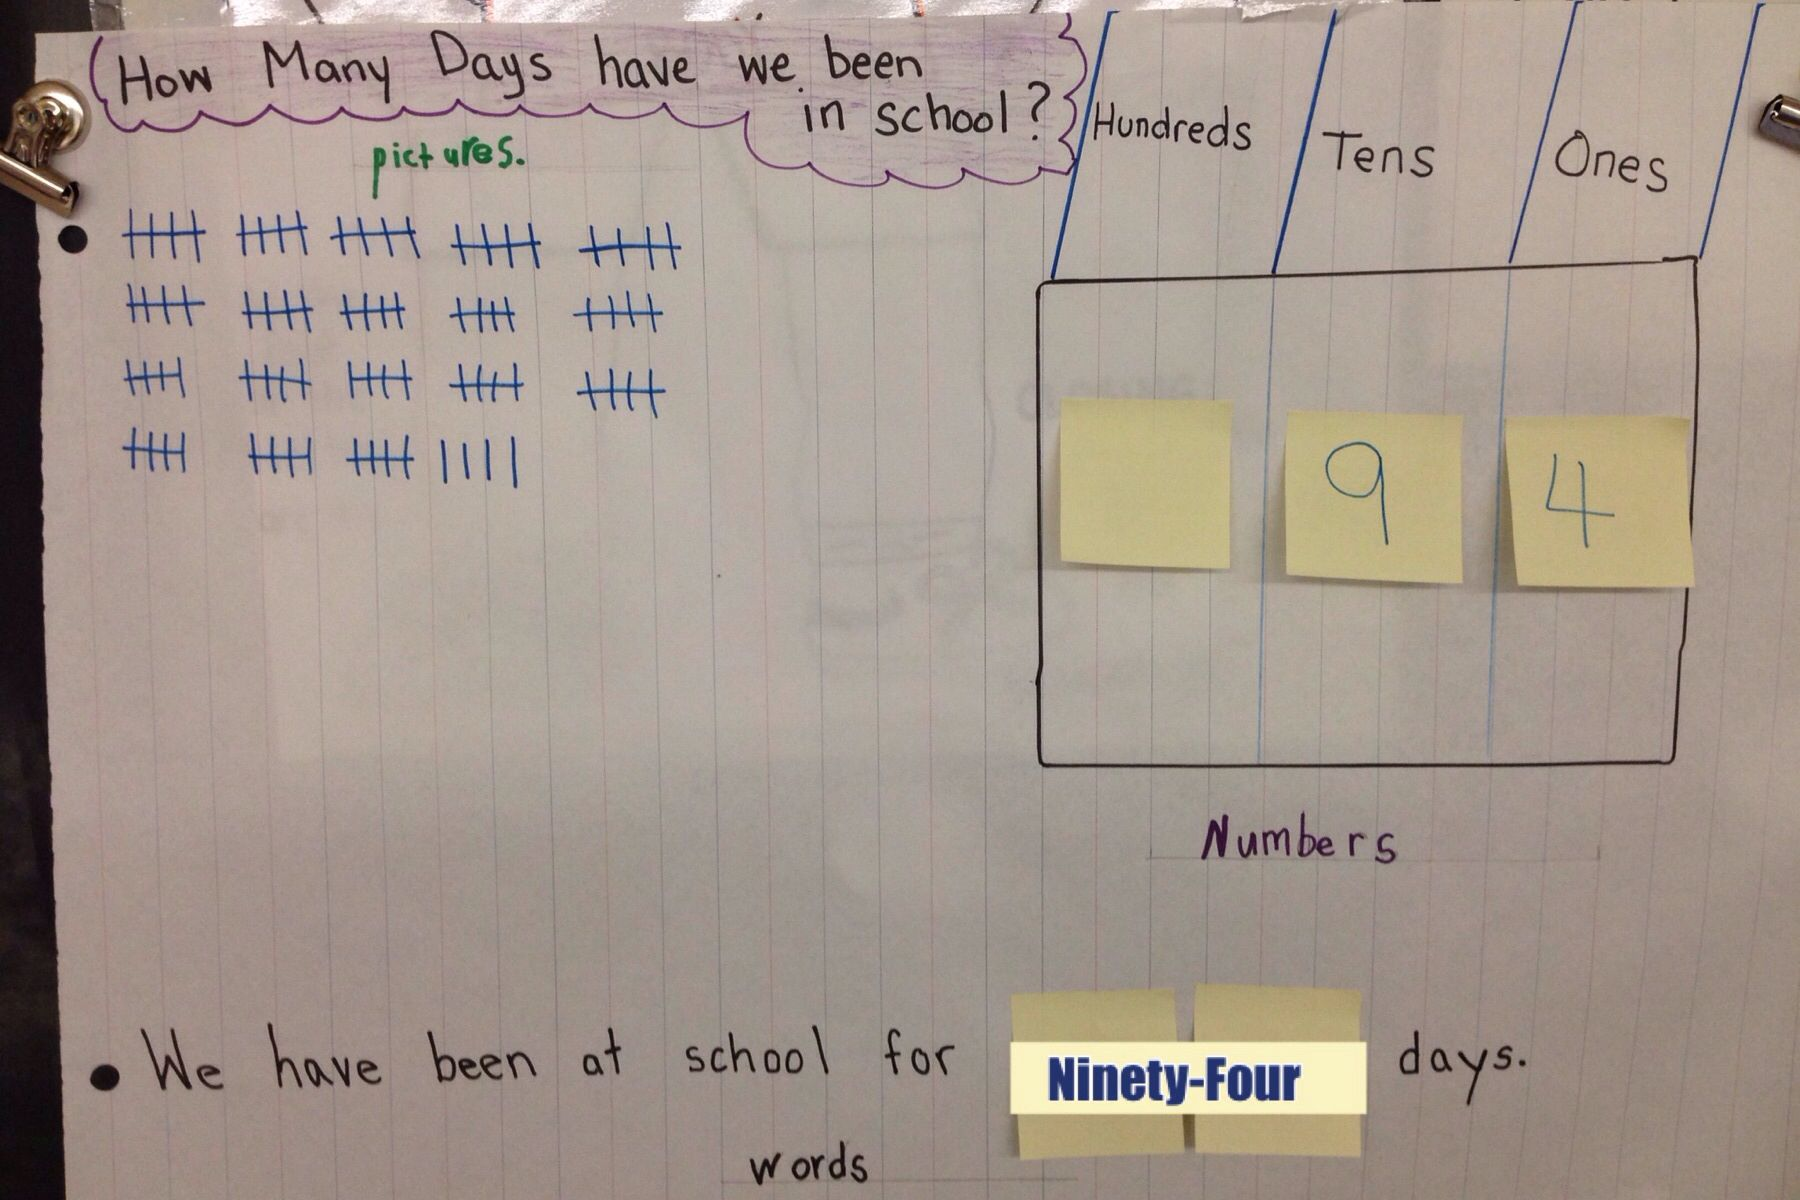 How Many Days Have We Been in School?  - Have the kids make titles - Count by Fives - Change with sticky notes - Pictures, Numbers, & Words - Grade 1 & up!